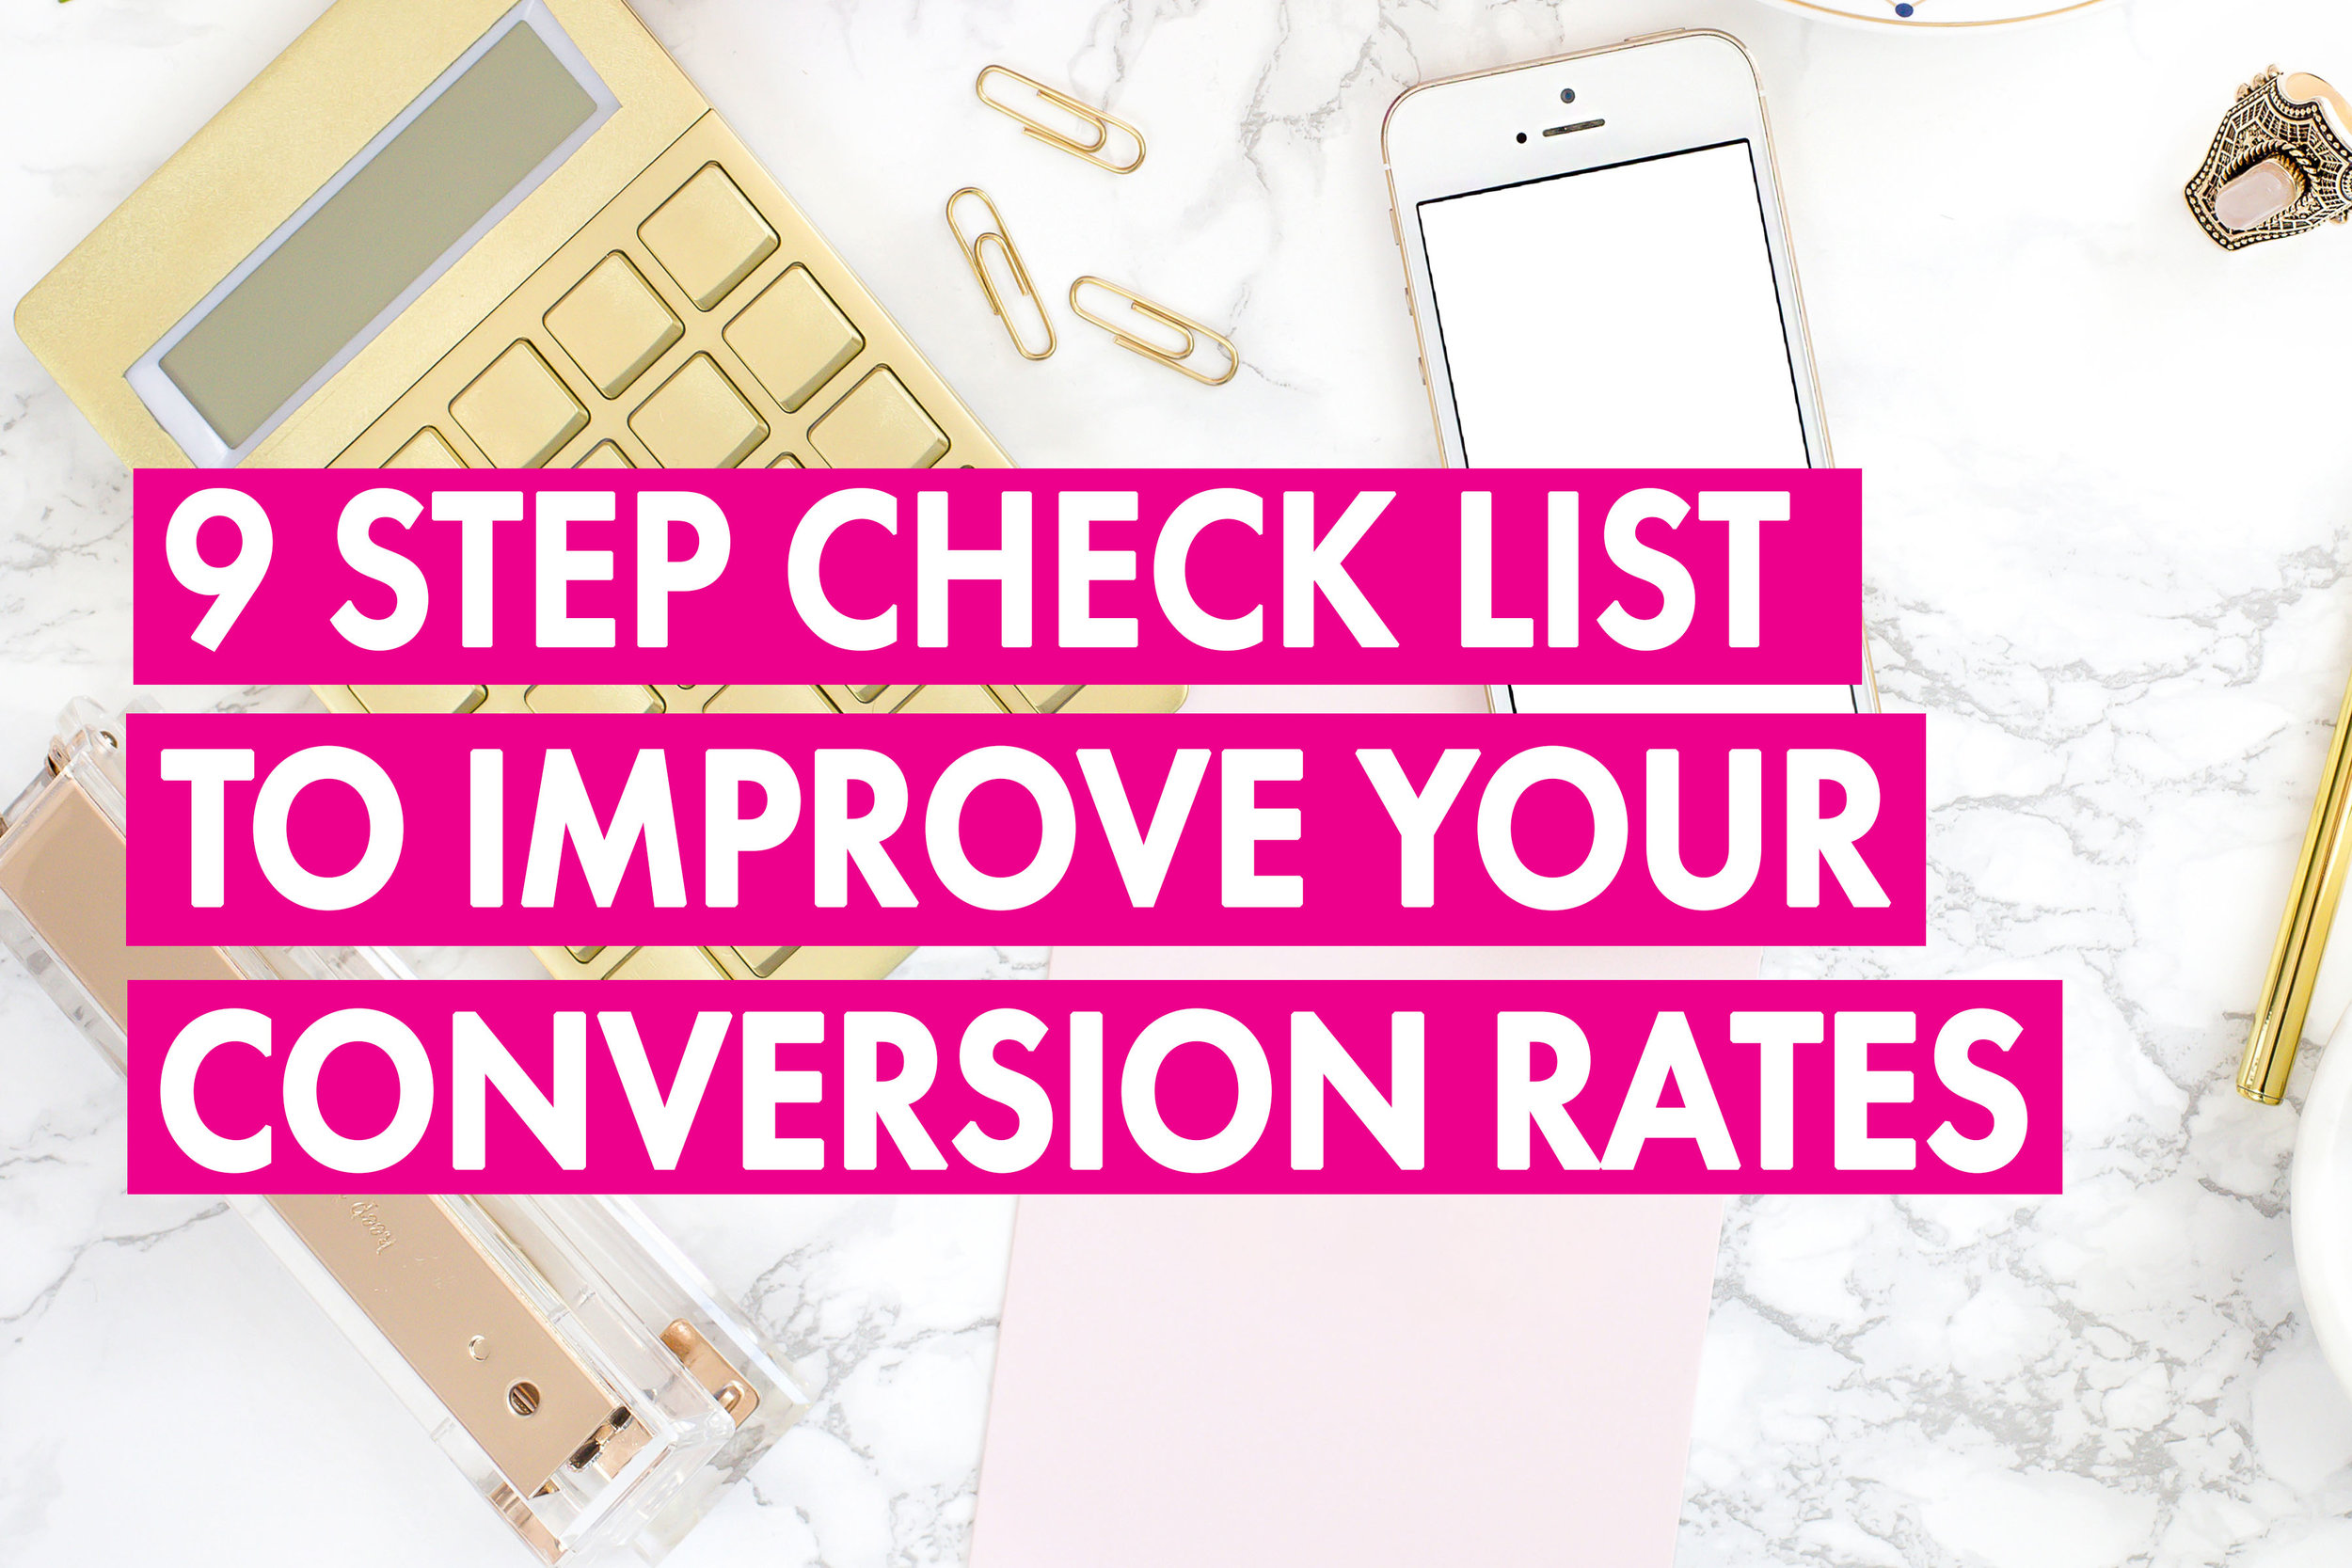 9 step check list to improve your conversion rates.jpg